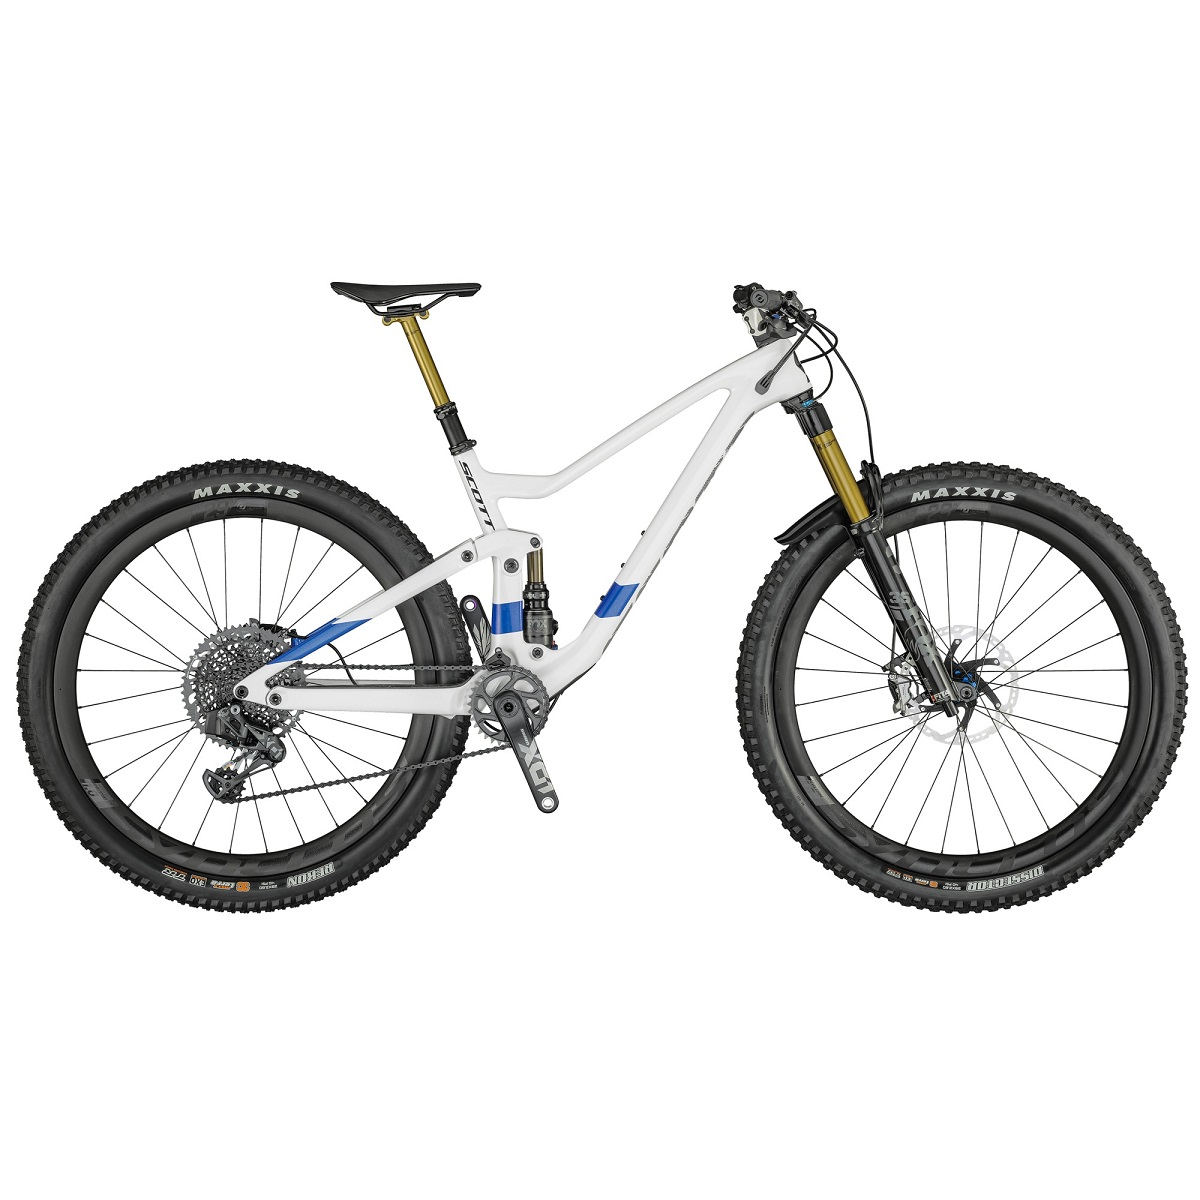 2021 Scott Genius 900 Tuned AXS Mountain Bike